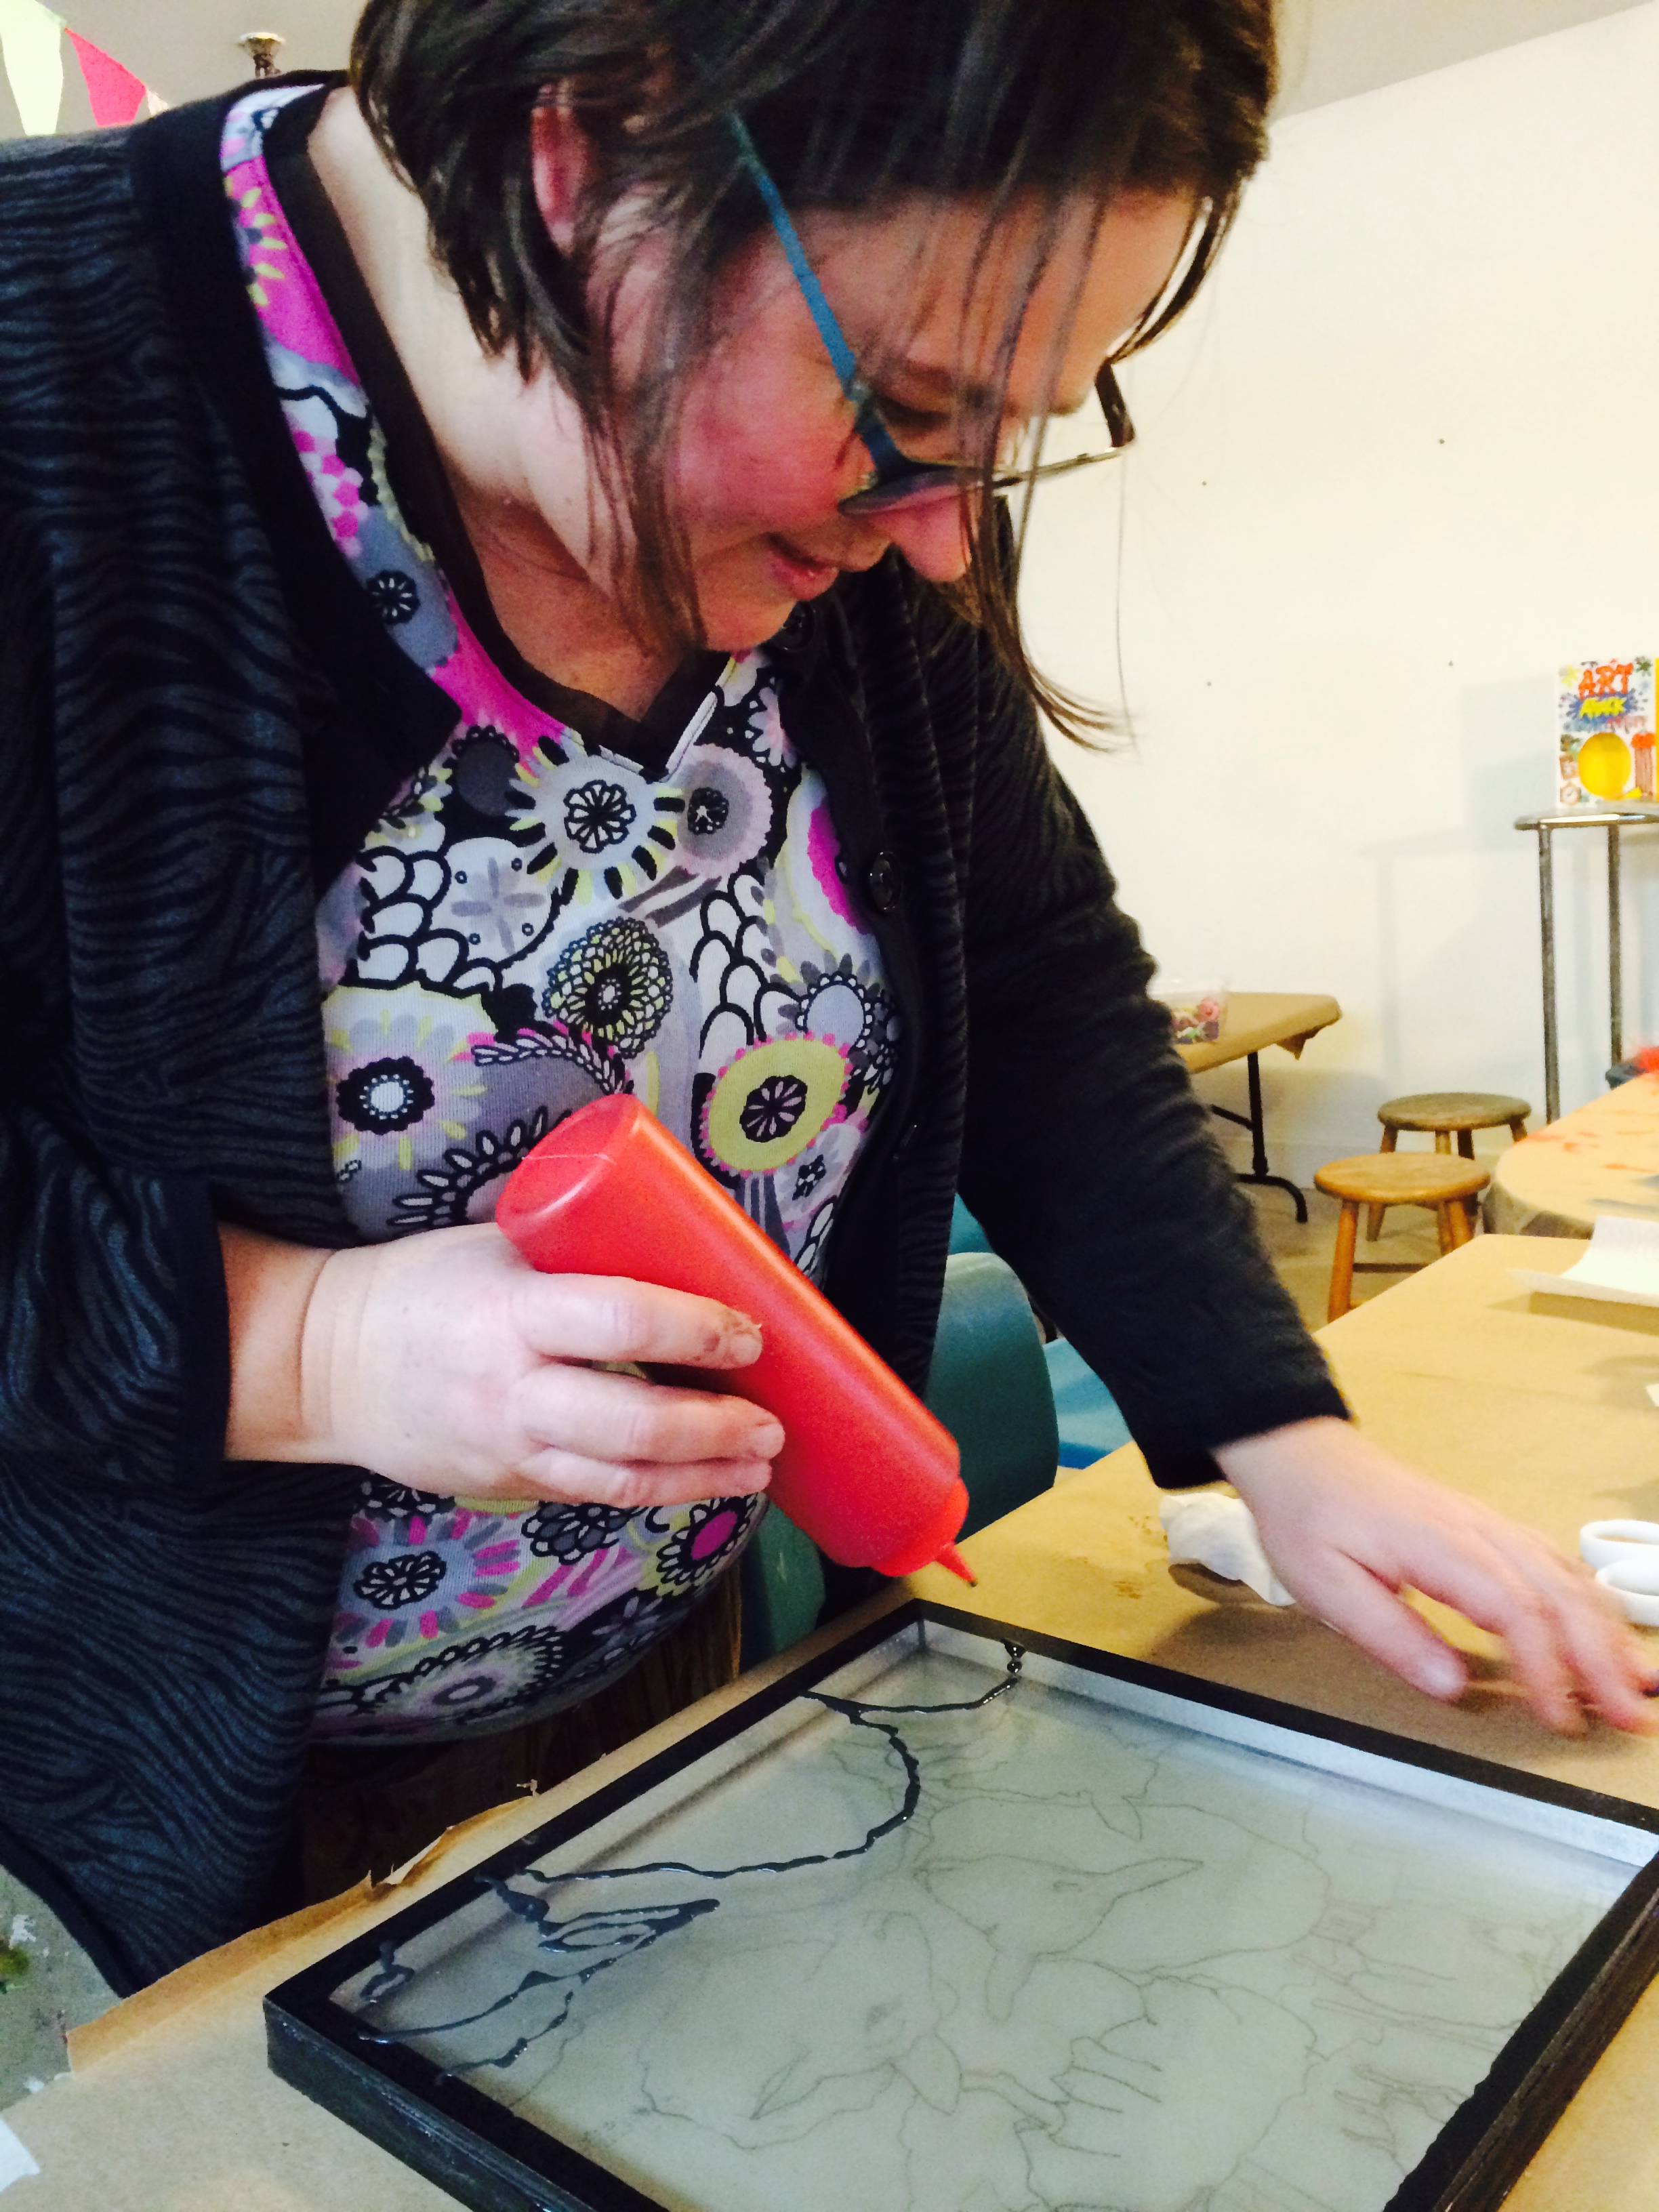 Facilitator Heather is also at work, experimenting with a home-made stain glass paint on glass samples donated by Fowler Bauld & Mitchell.